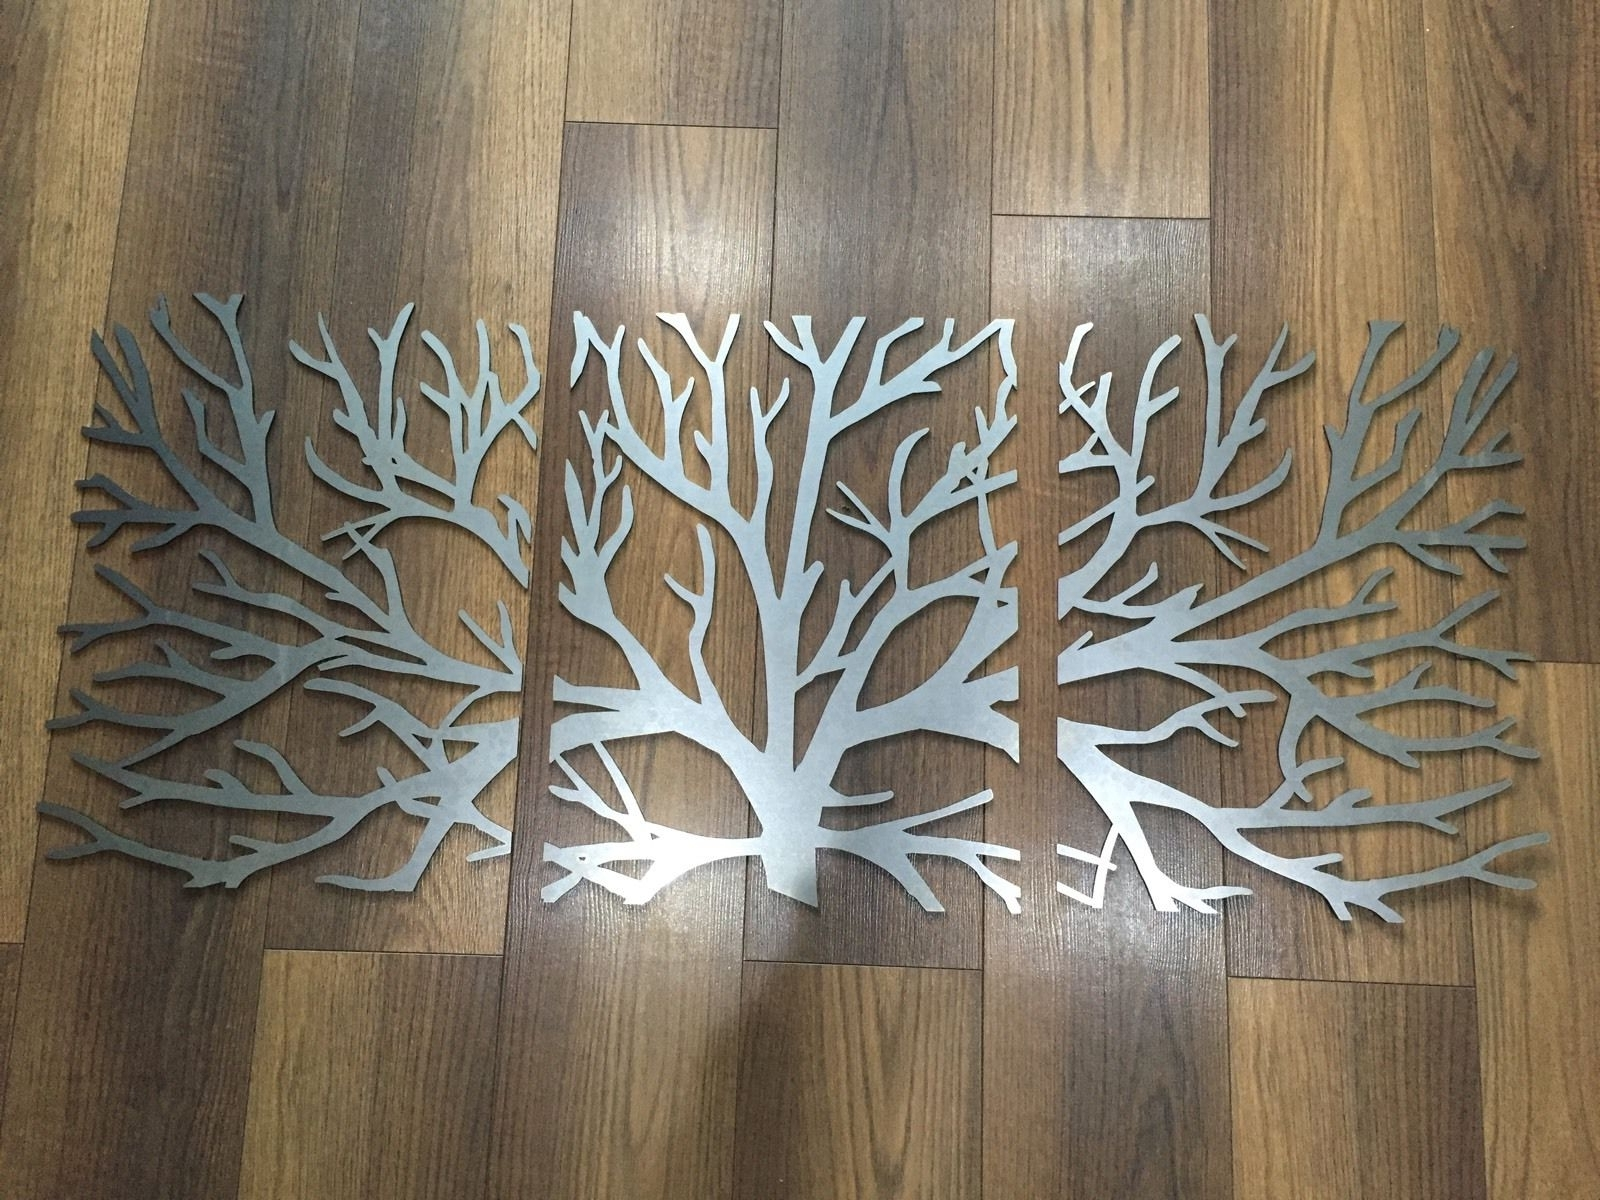 Metal Wall Art Awesome : Diy Corrugated Metal Wall Art – Centre Regarding Current Large Metal Wall Art Sculptures (View 4 of 15)